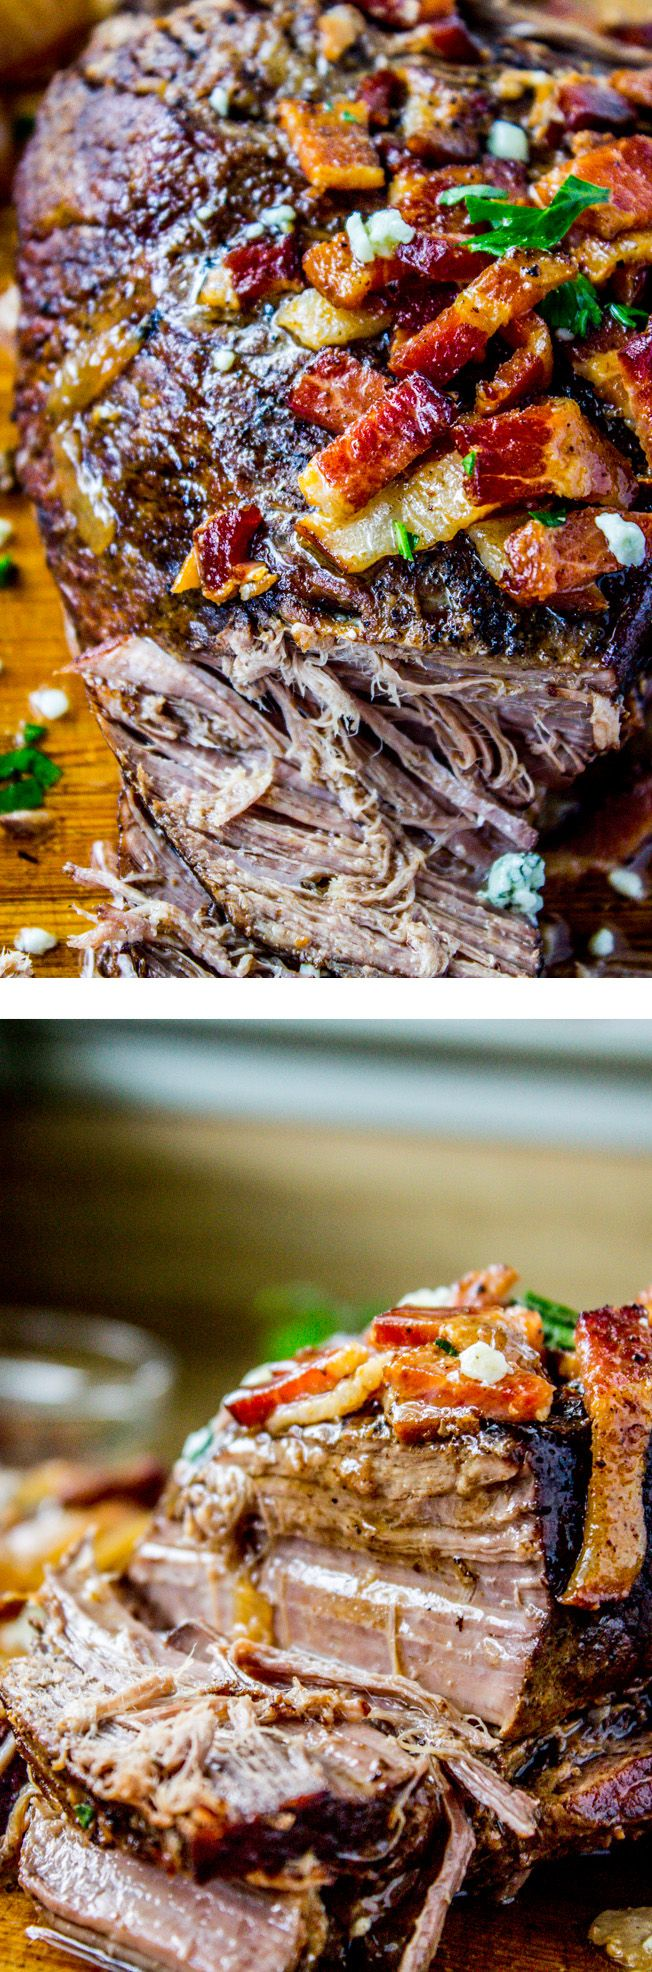 Bacon Blue Cheese Brisket (Crock pot!) from The Food Charlatan // Slow cook your way to bacon-y, brisket-y happiness. Makes for a great weeknight dinner but is fancy enough for company too!: